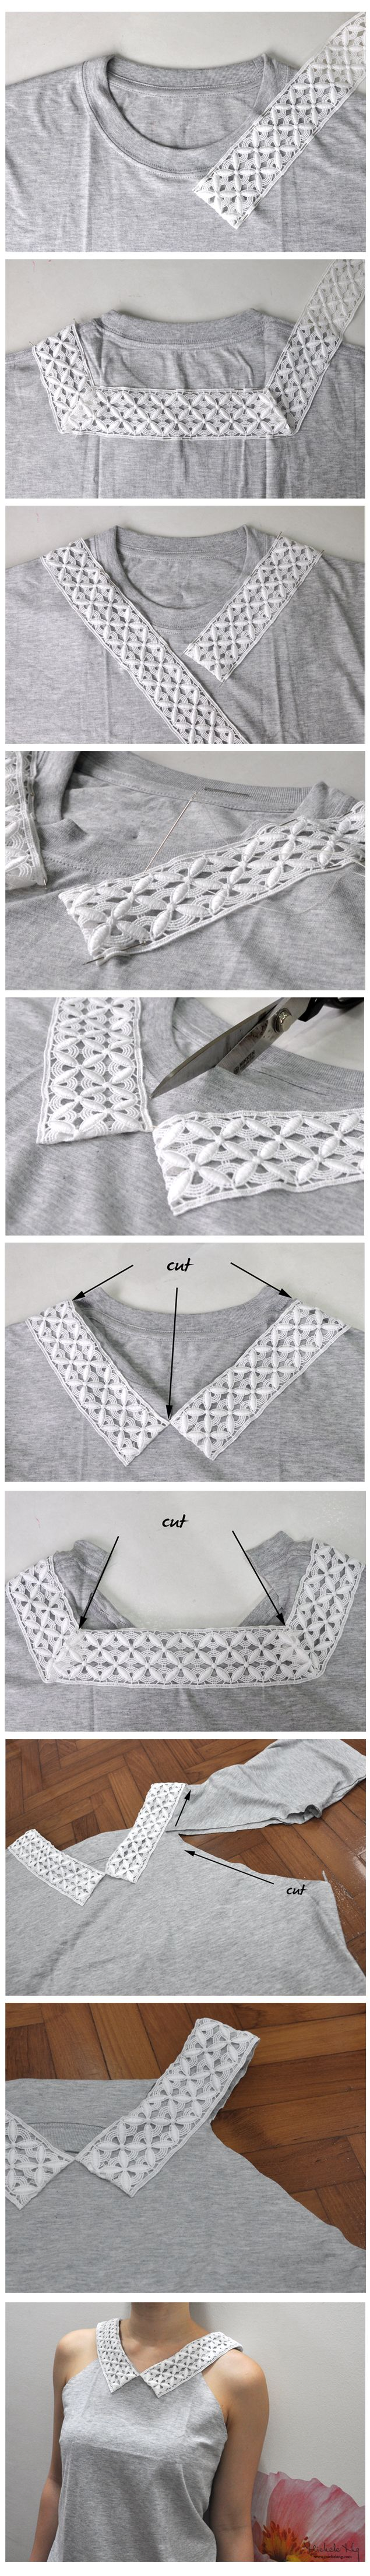 How to upcycle a plain old tee shirt tutorial.